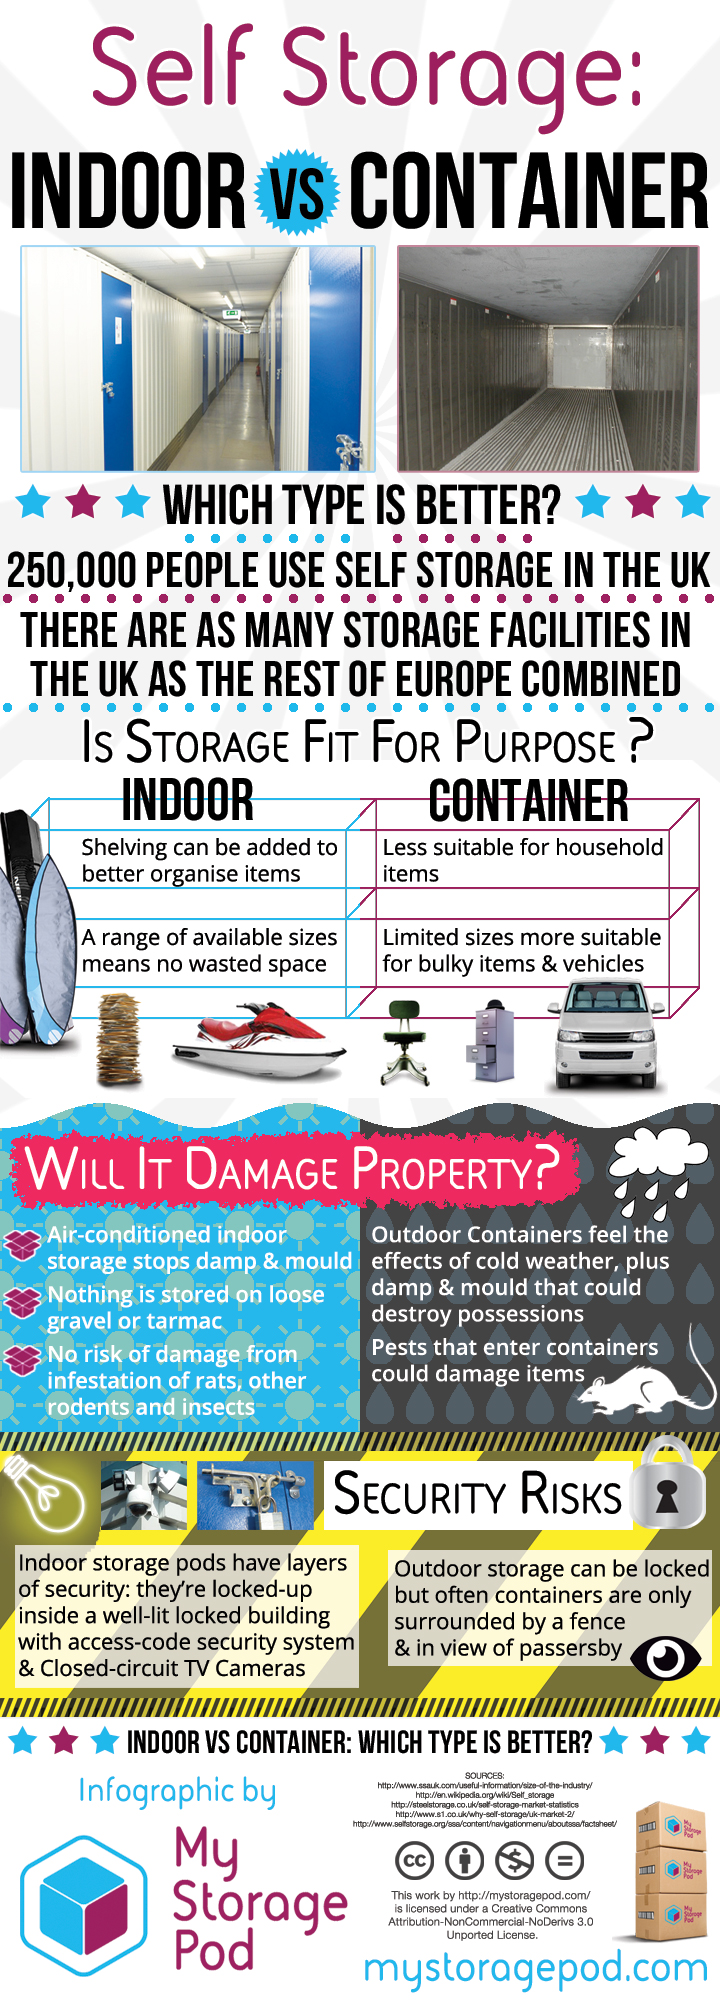 Self Storage: Indoor vs Container - Which is best? Infographic by My Storage Pod